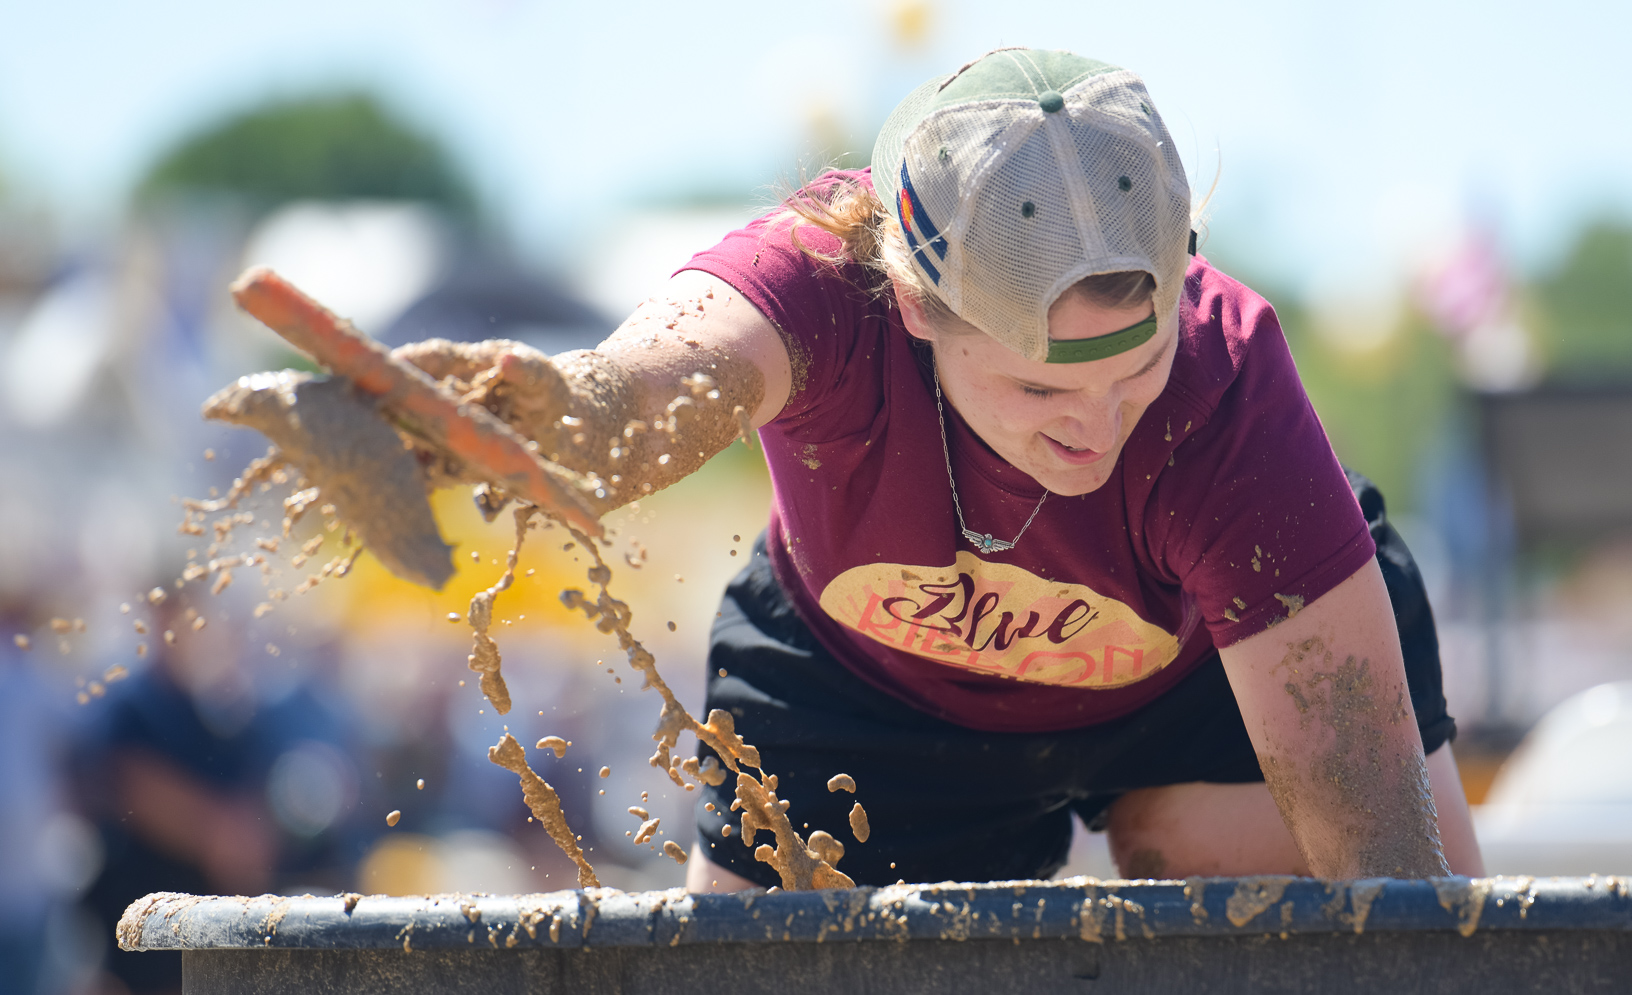 Lucia Ruppert looks through slop for a corn cob while competing in the Outhouse Race at the Iowa State Fair. Photo credit: Joseph L. Murphy/Iowa Soybean Association